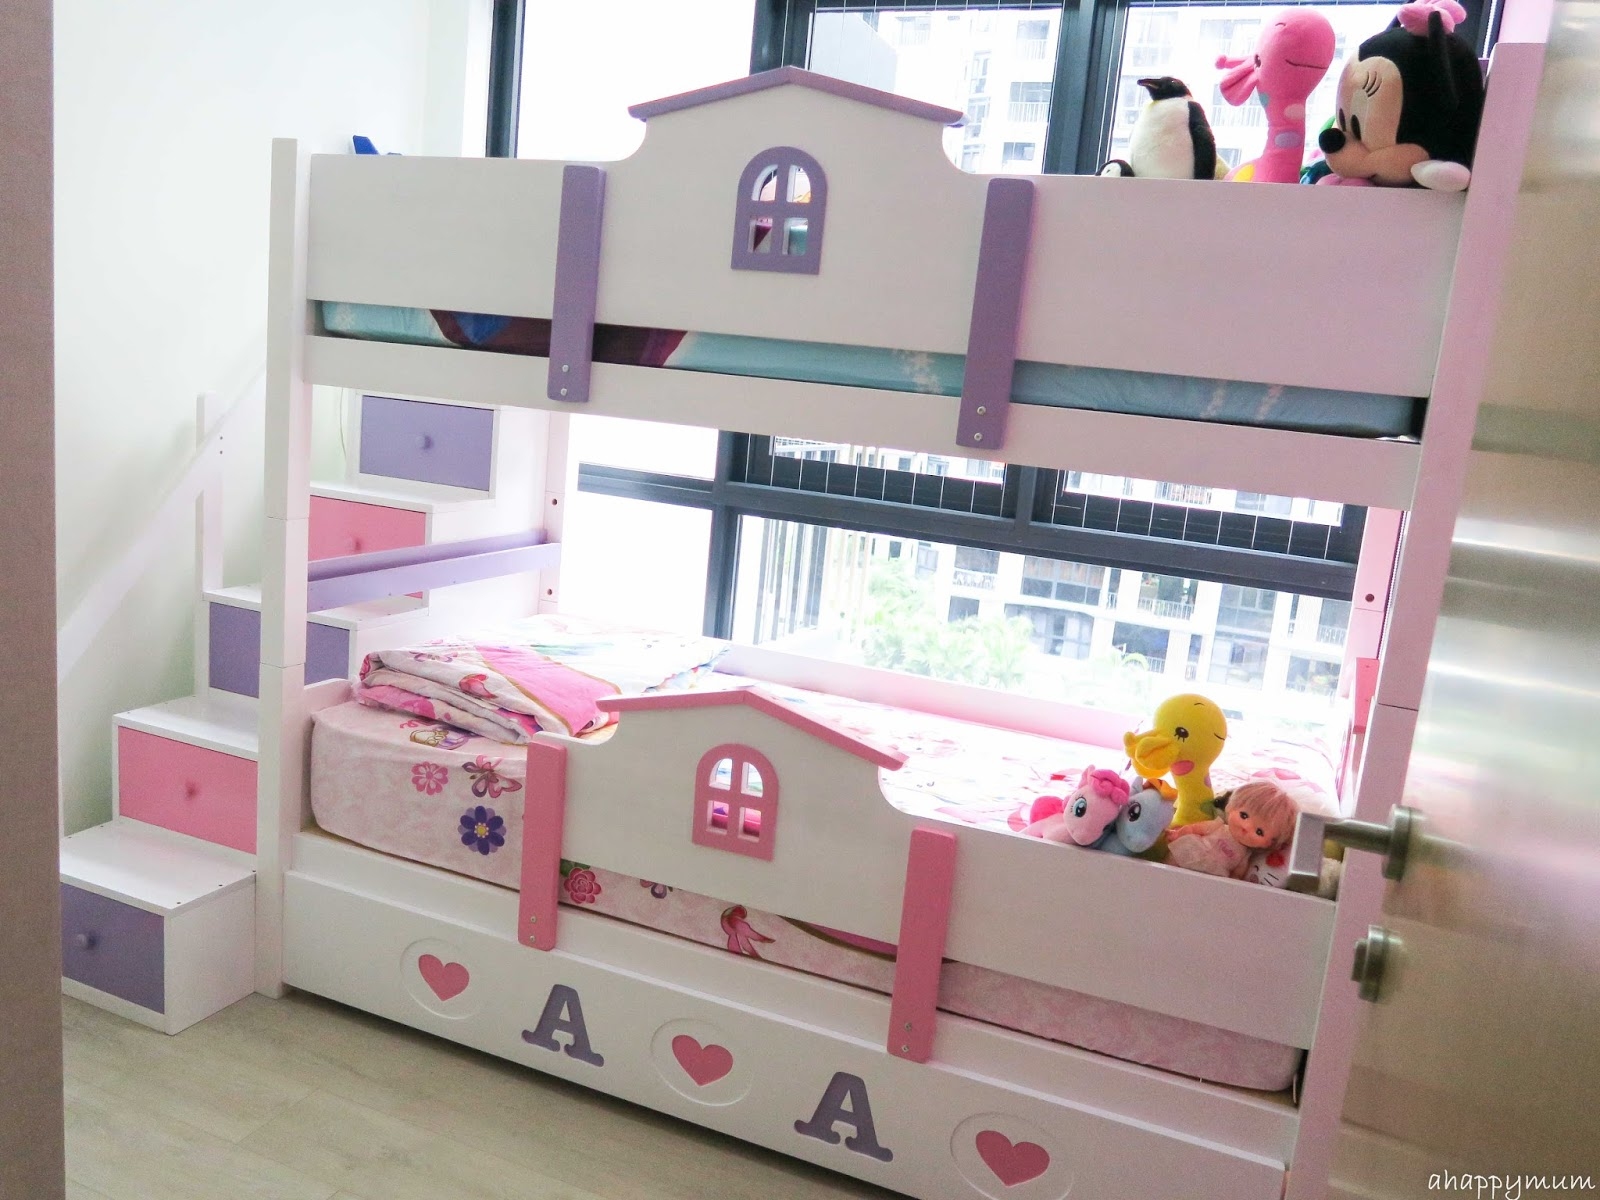 Double deck bedroom for kids girls - Yes Here S The Personalised Pink And Purple Bed For The Girls The Little House Double Deck With Trundle And Ladder Drawers What I Like About Kids Haven